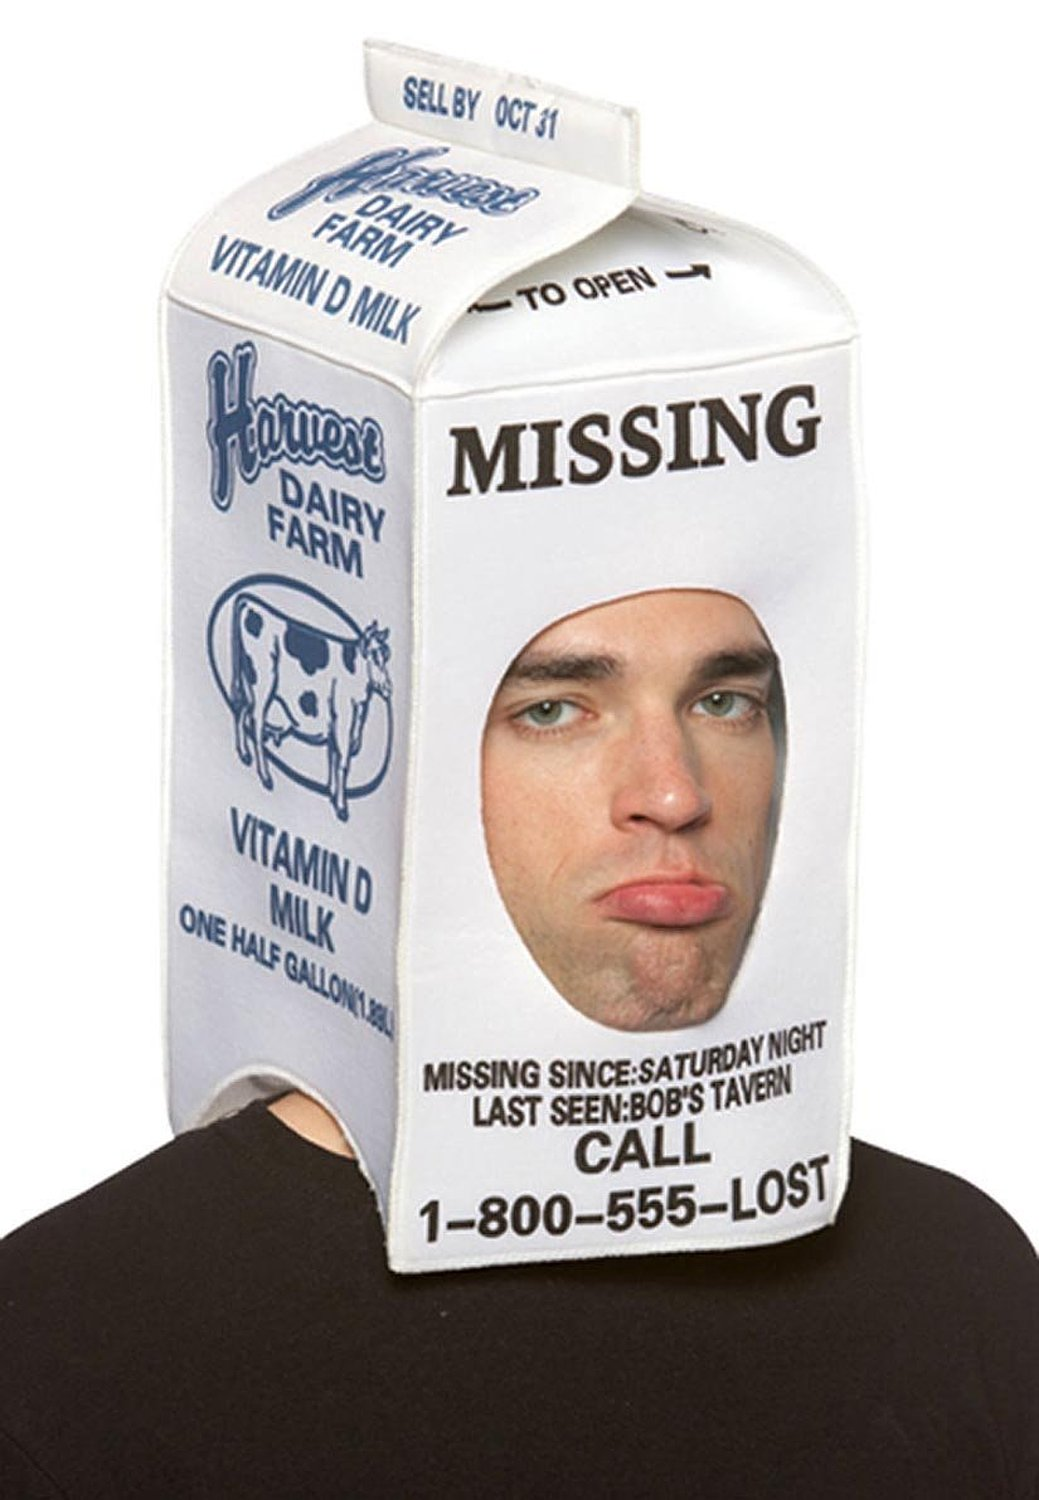 Where is America? |Missing Person Milk